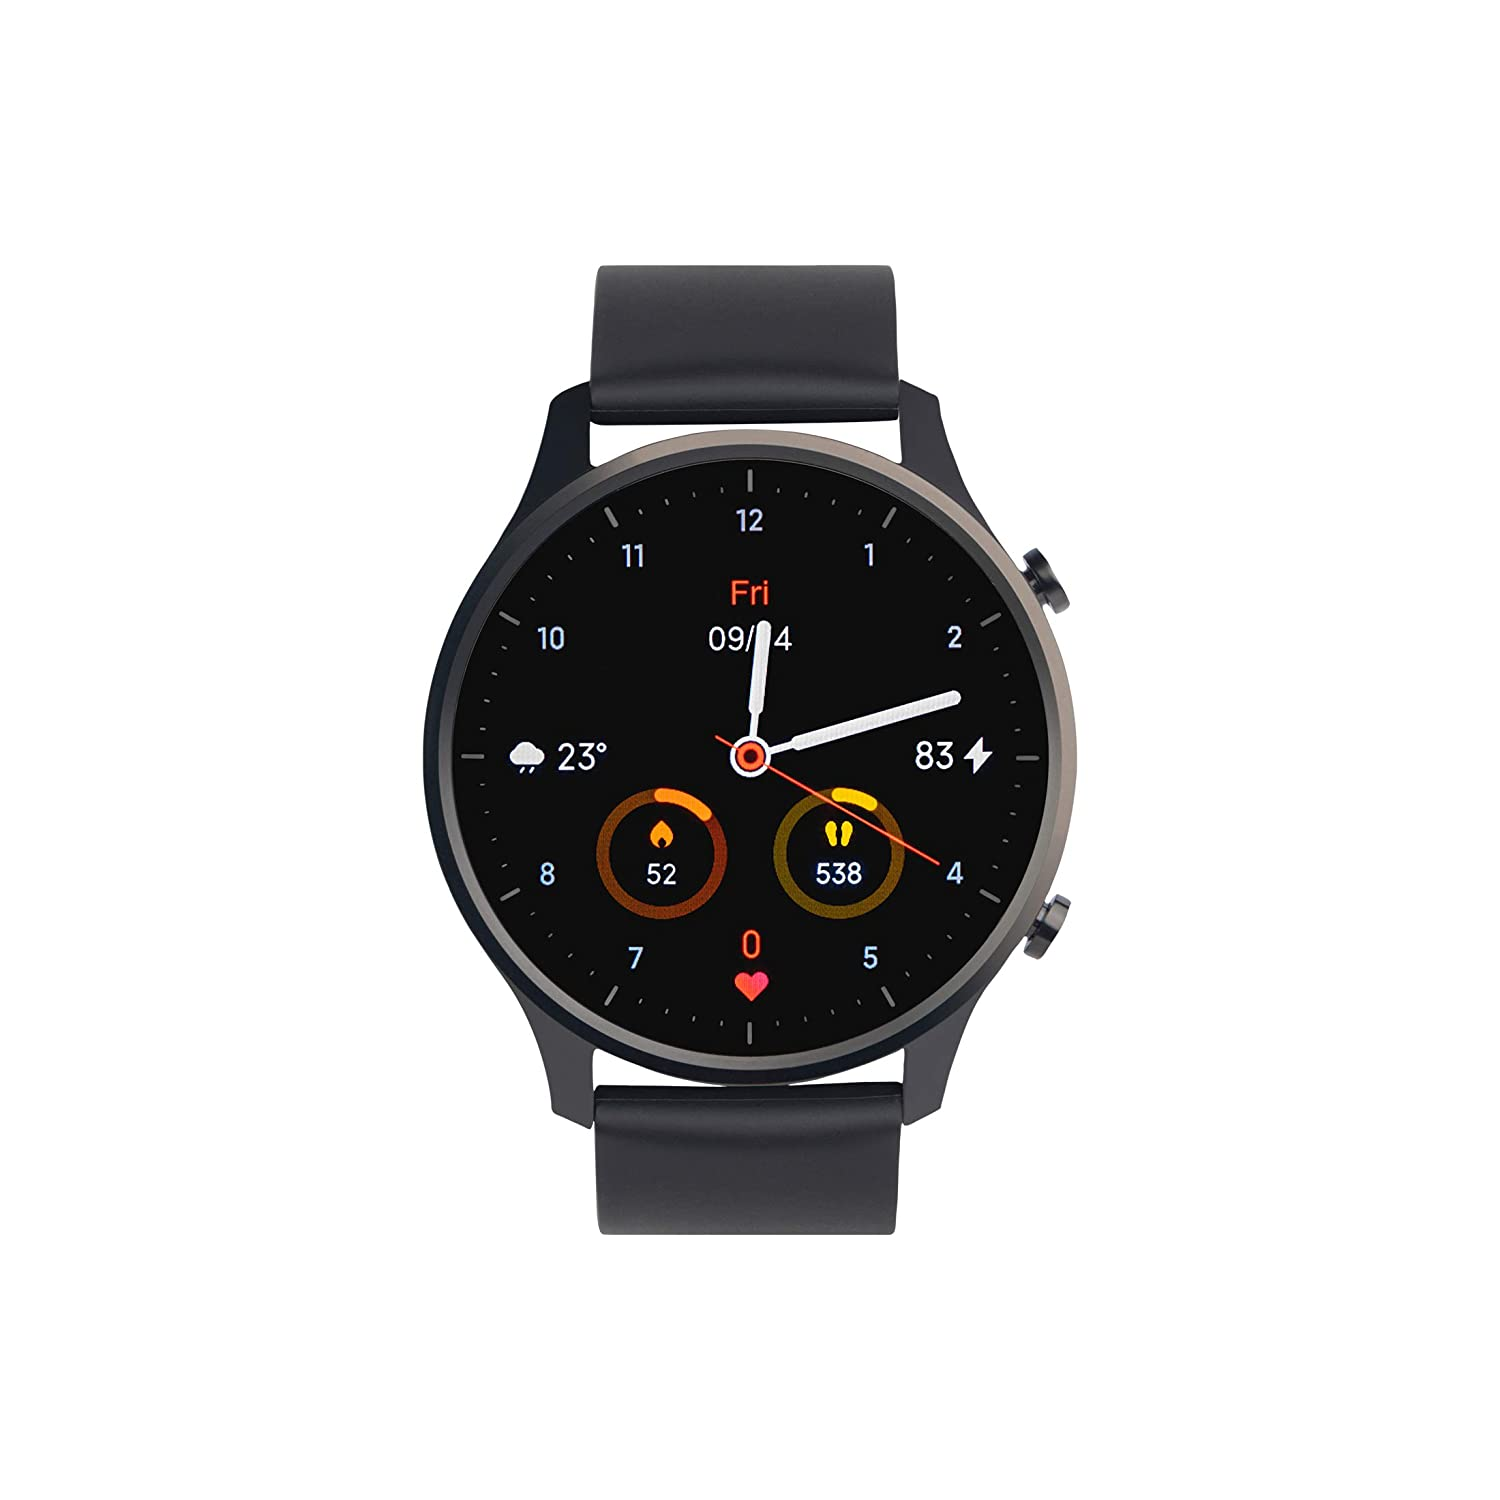 "Mi Watch Revolve,1.39"" AMOLED Screen,5ATM Water Resistant,VO2 Max,First Beat Motion Algorithm,Stress & Sleep Management, Midnight Black"